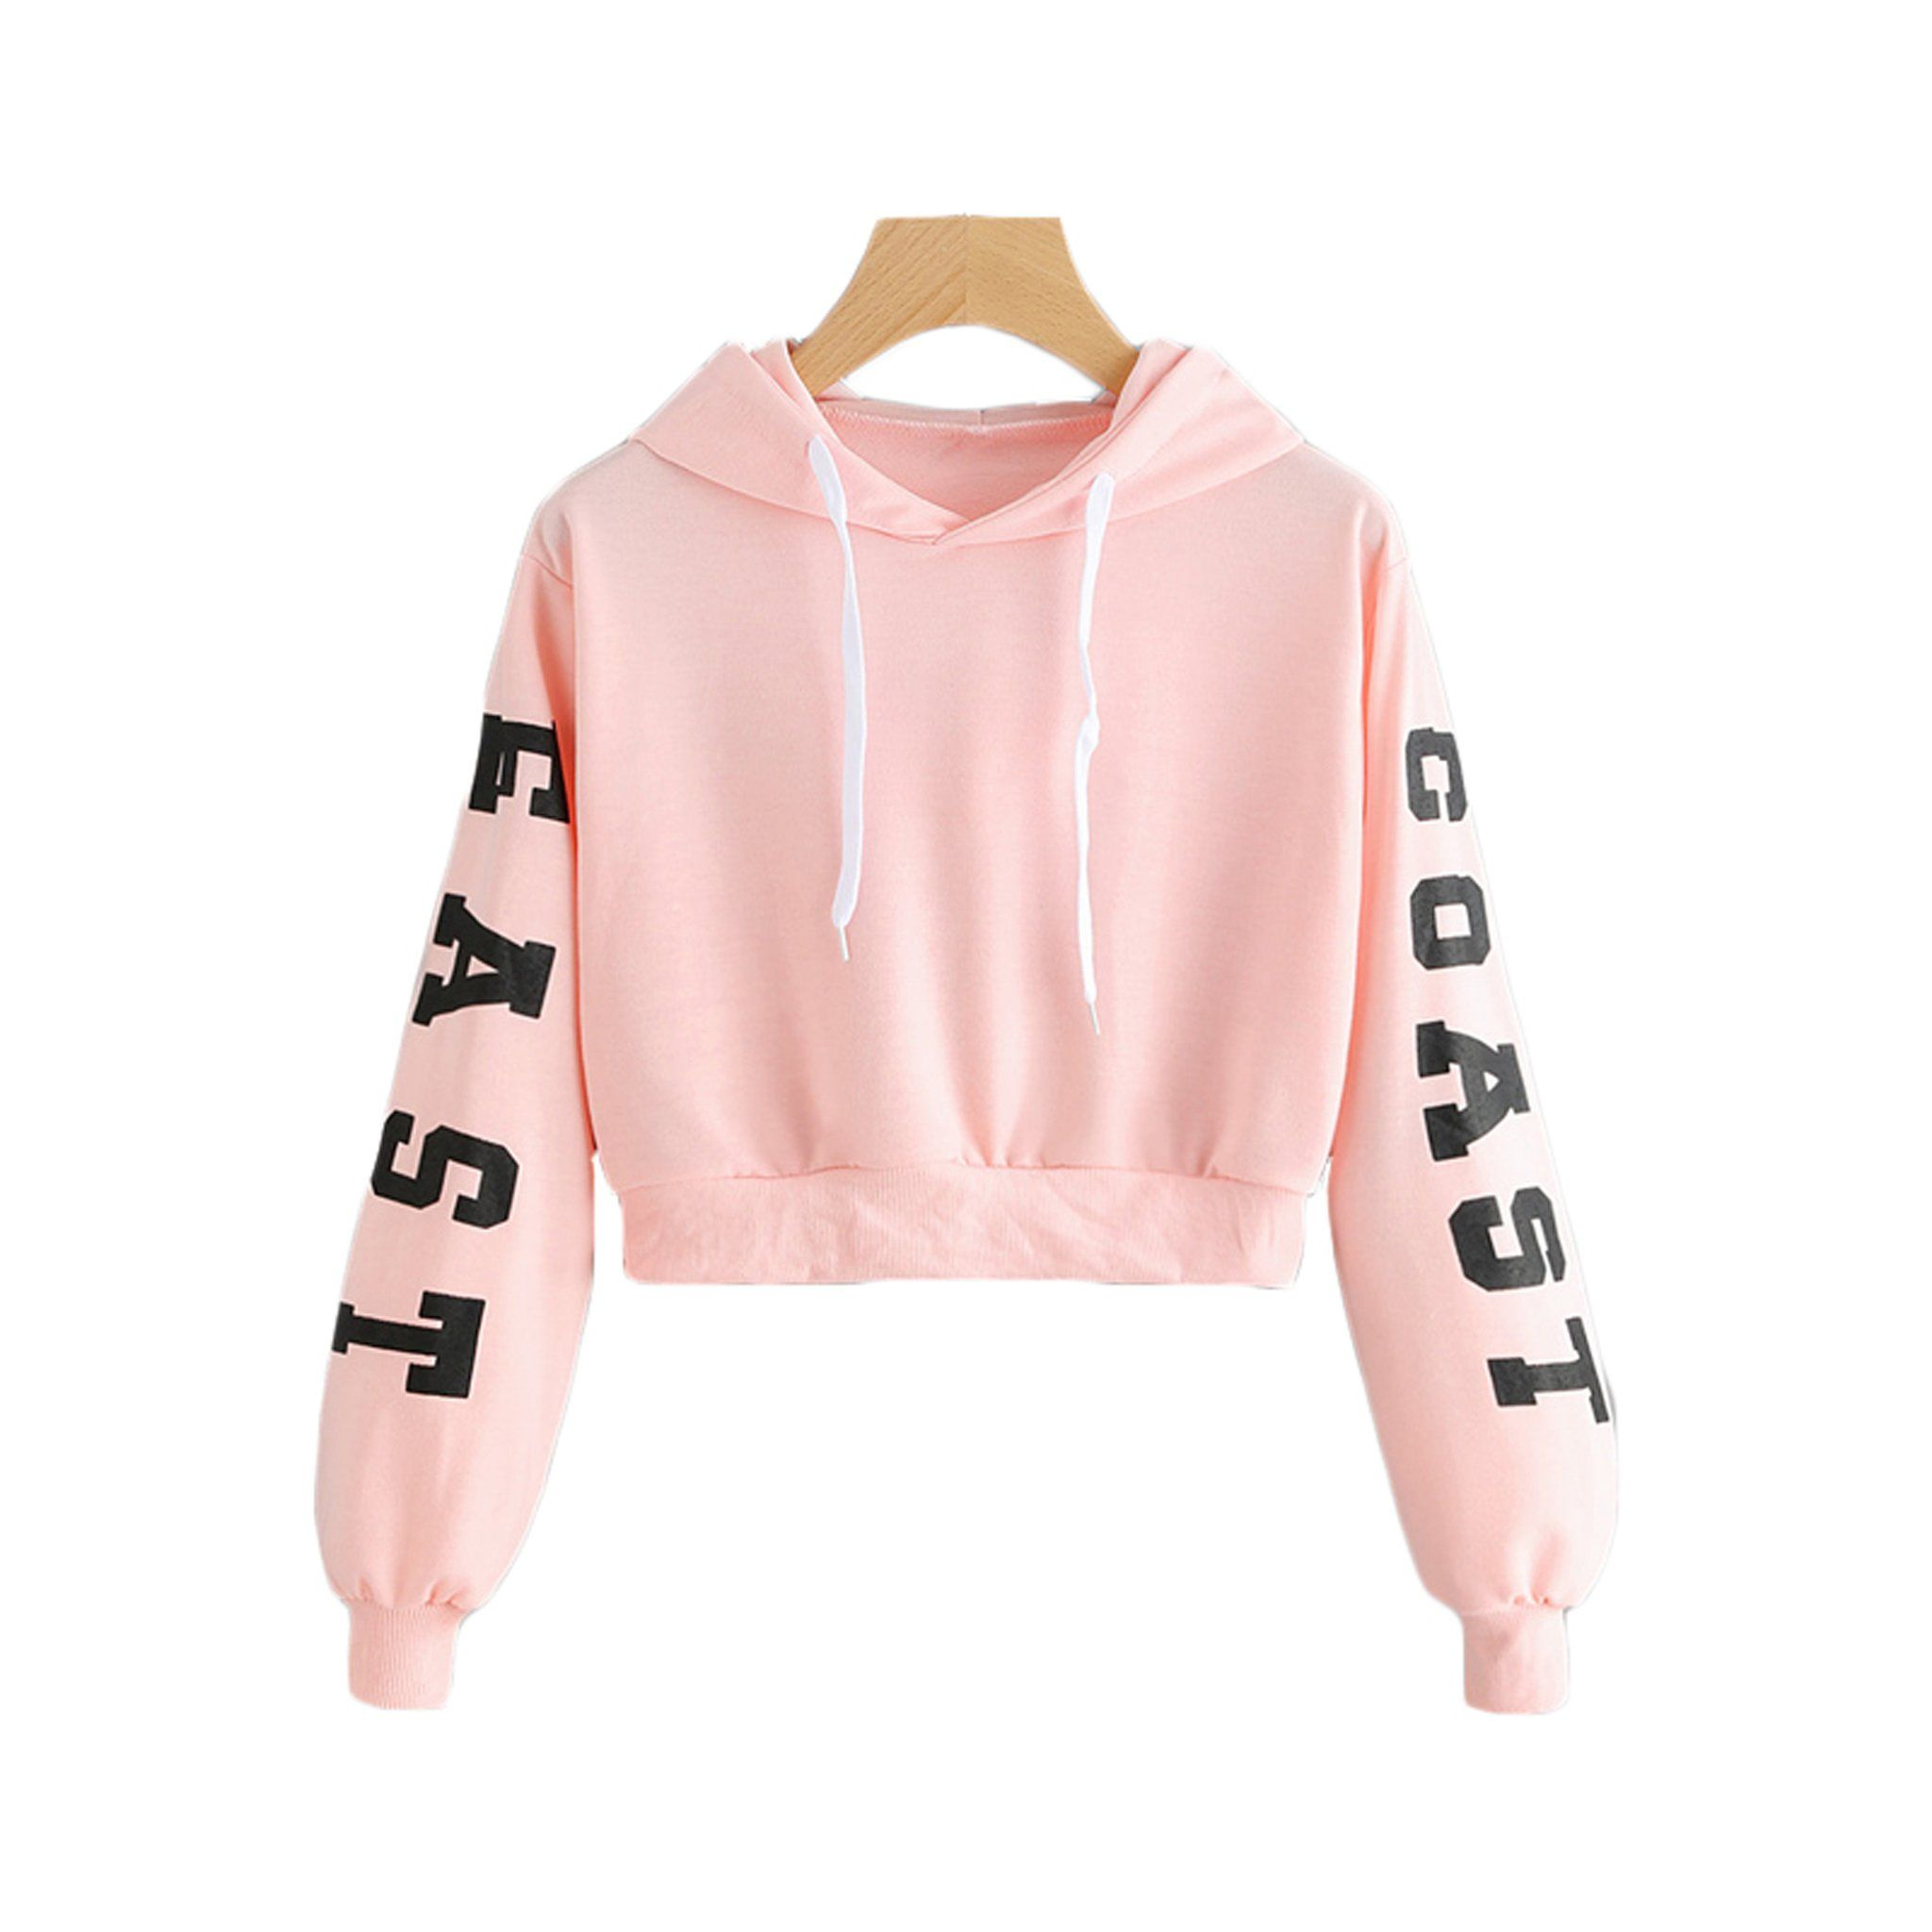 cca4801817ee Cute Casual Back to School Outfit Ideas 2018 for Teen Girls 2018 - East  Coast Queens Sweater Hoodie Hoody in Baby Pink - Lindas ideas casuales de  regreso a ...